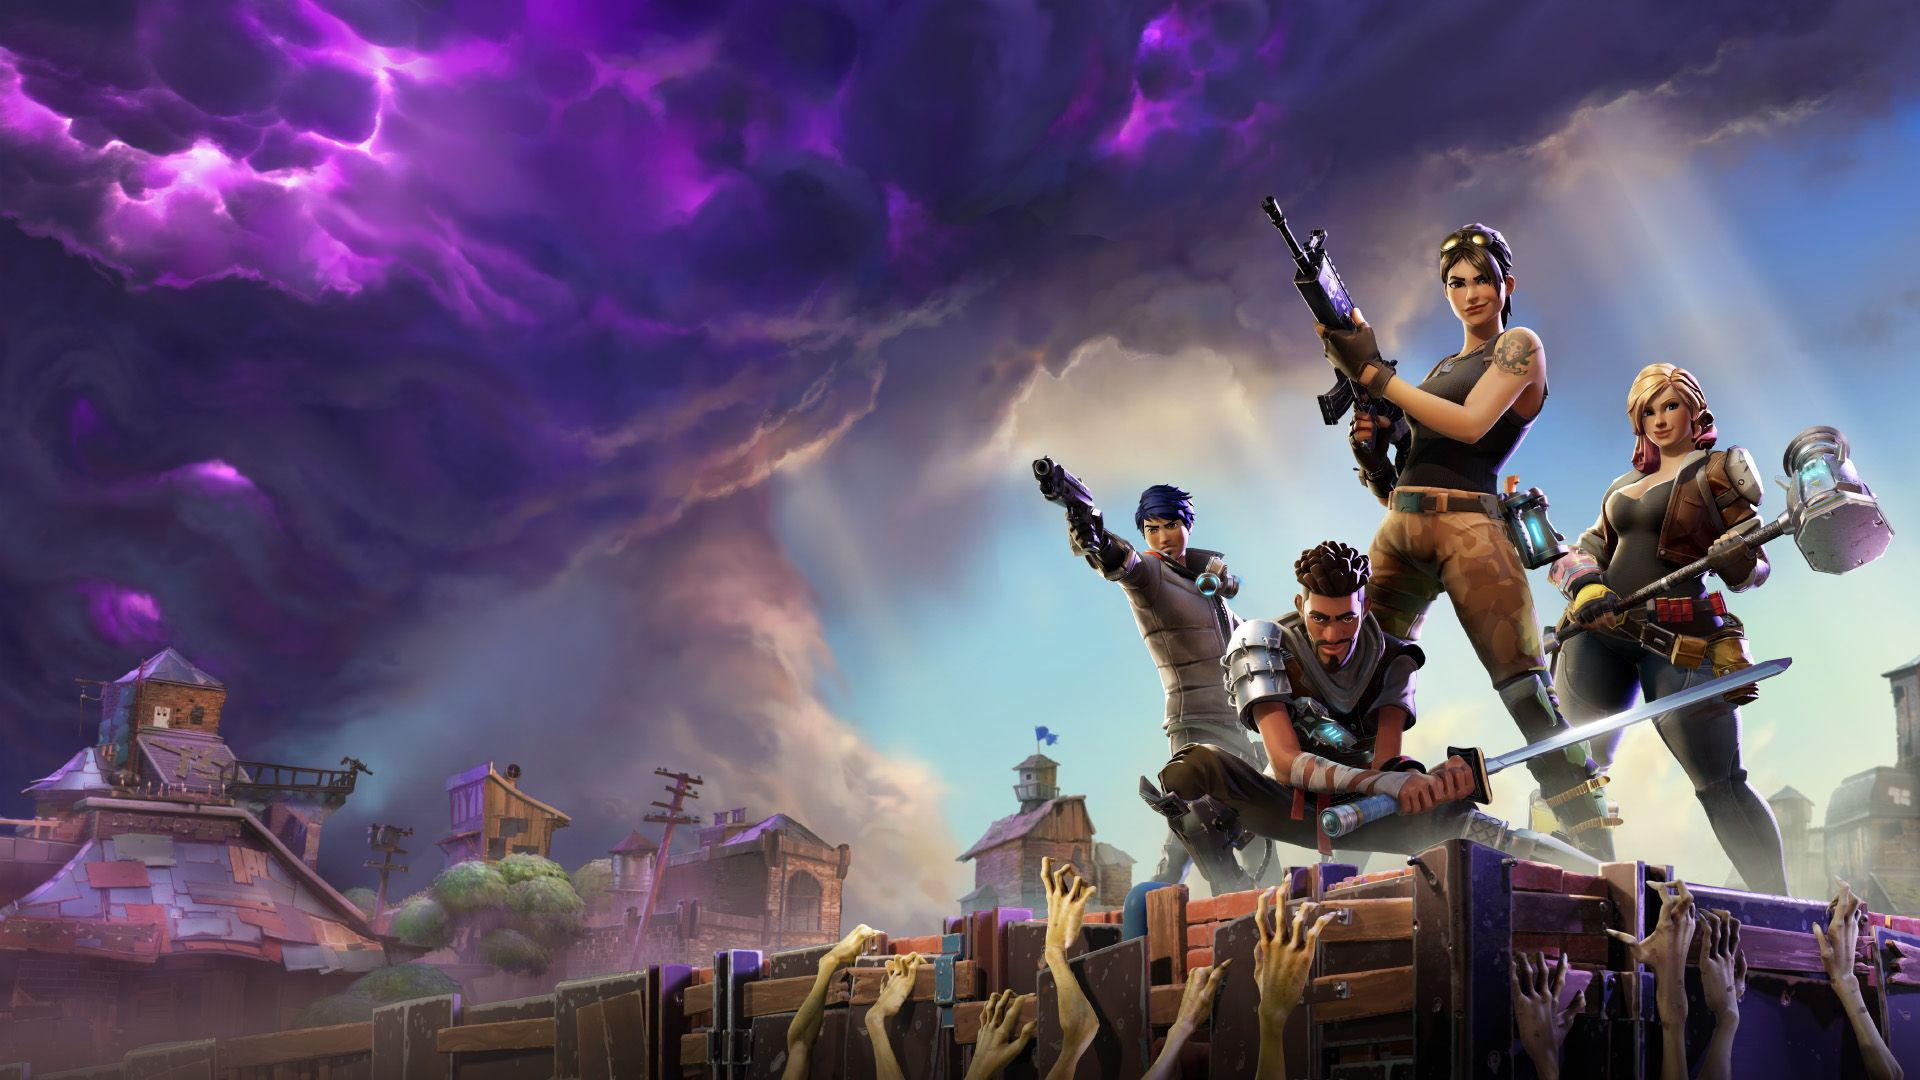 Fortnite Laptop Wallpapers - Top Free